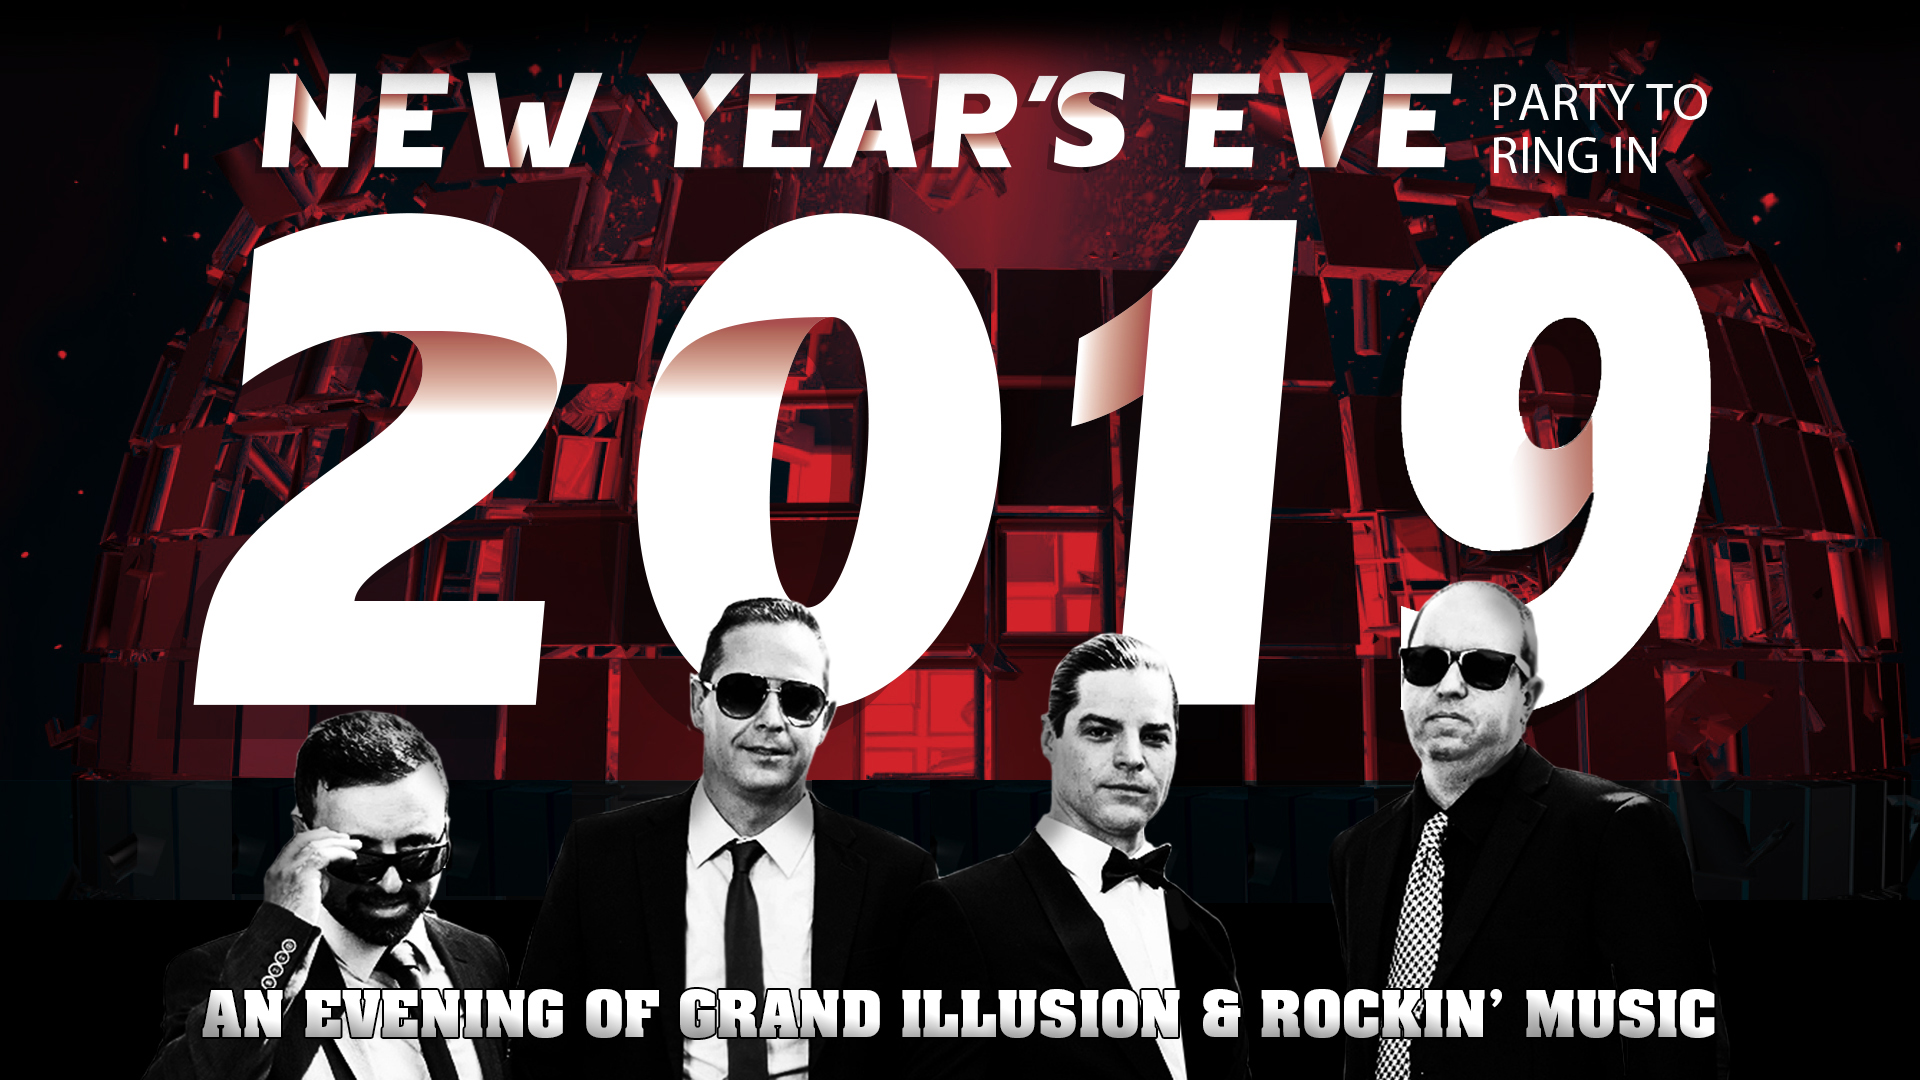 New Year's Eve Party VEGAS STYLE with the Associates at the Greg Frewin Theatre - Sunday, December 31st, 2017.